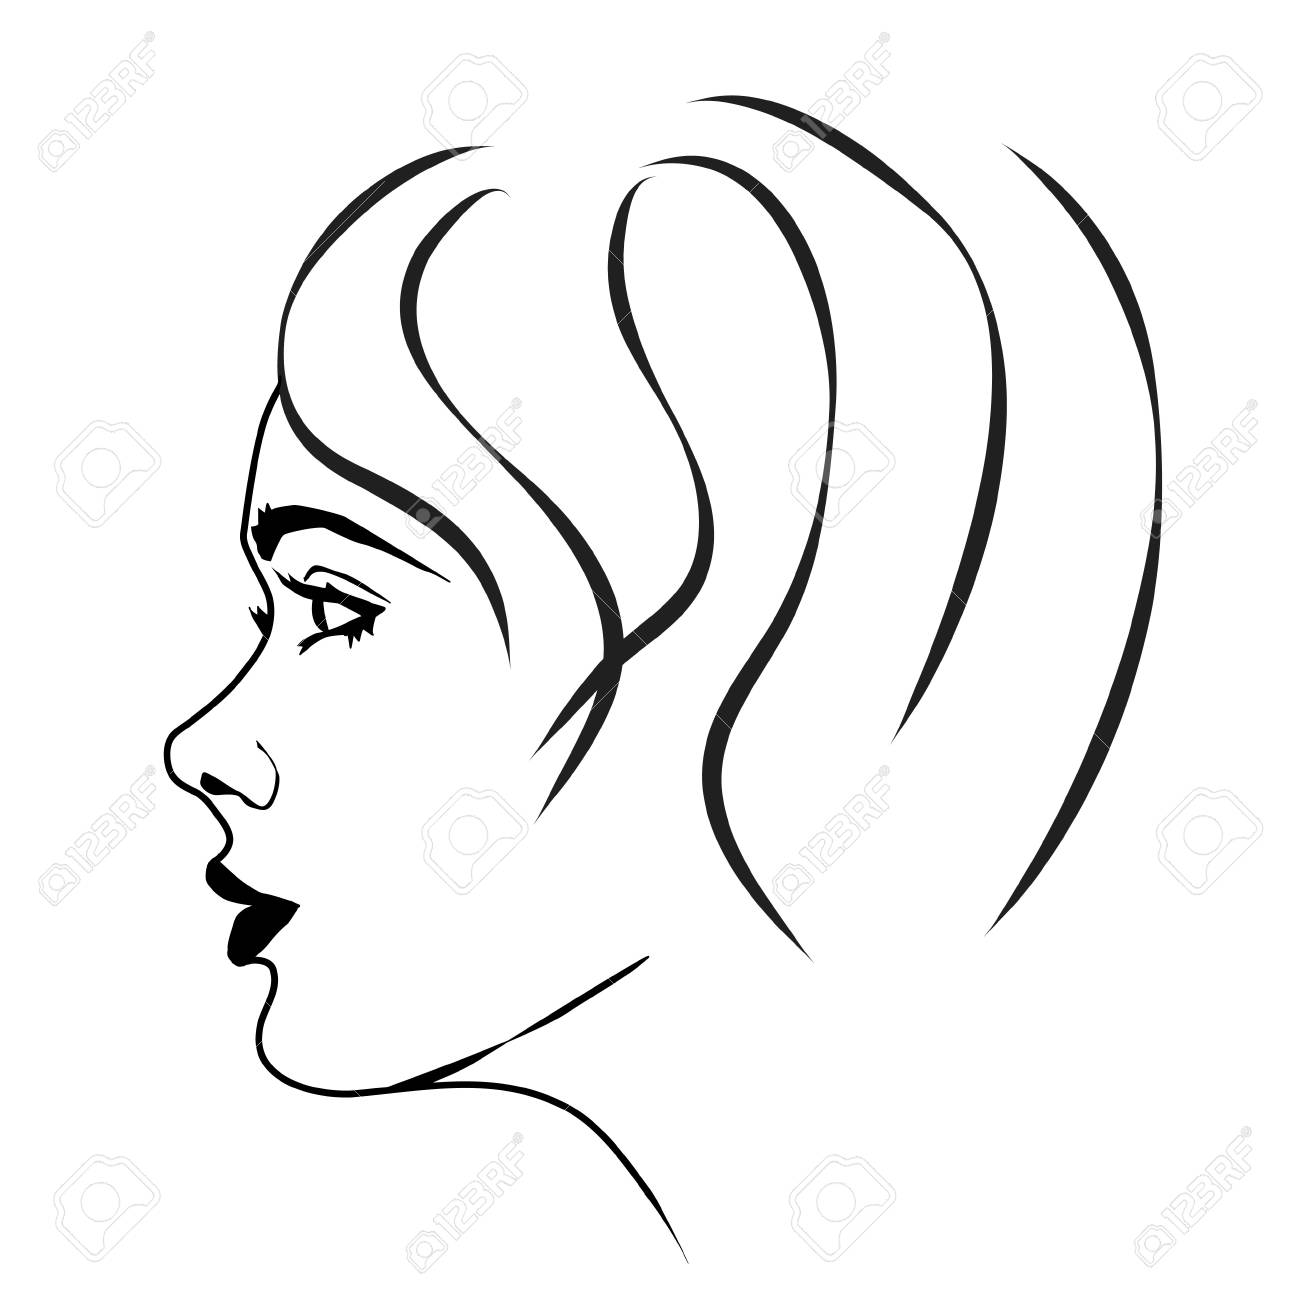 Vector illustration of a woman's face on white background. - 53815491